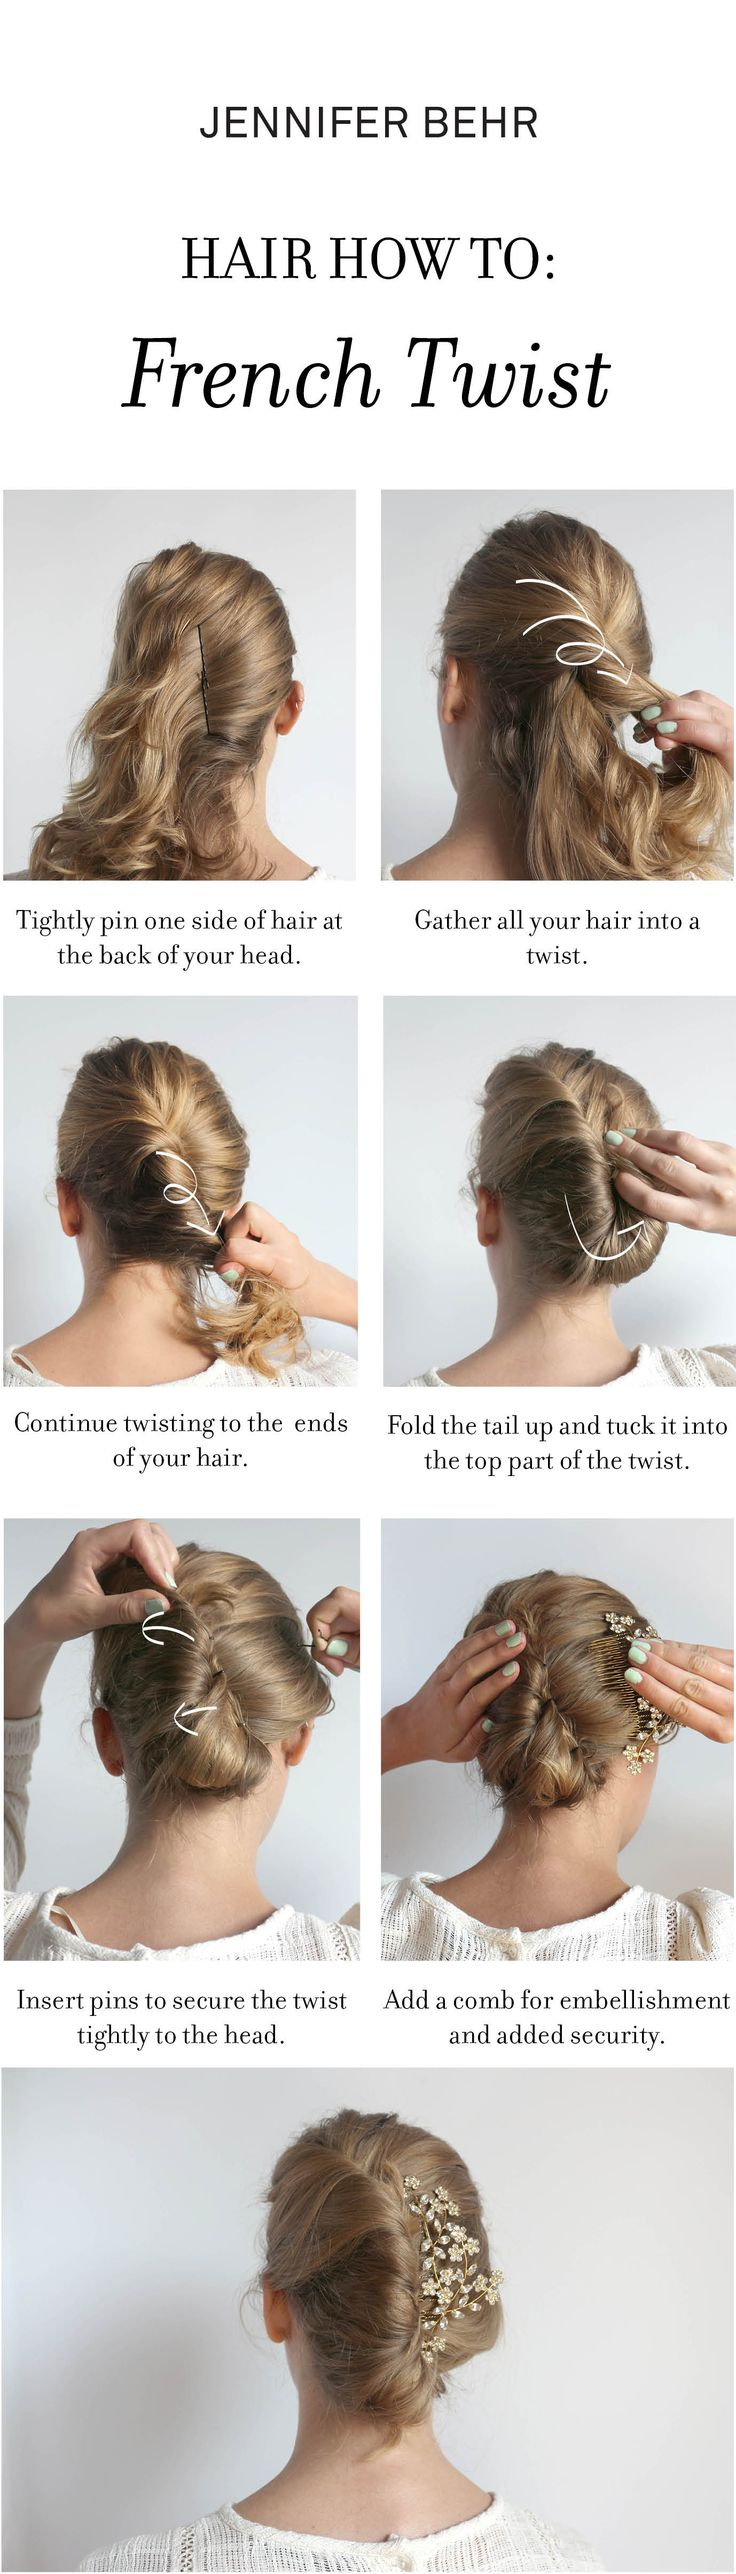 How to make a French Twist Up-do with the Jennifer Behr Jasmine Comb. Just twist and pin long hair and add a comb for embellisment!